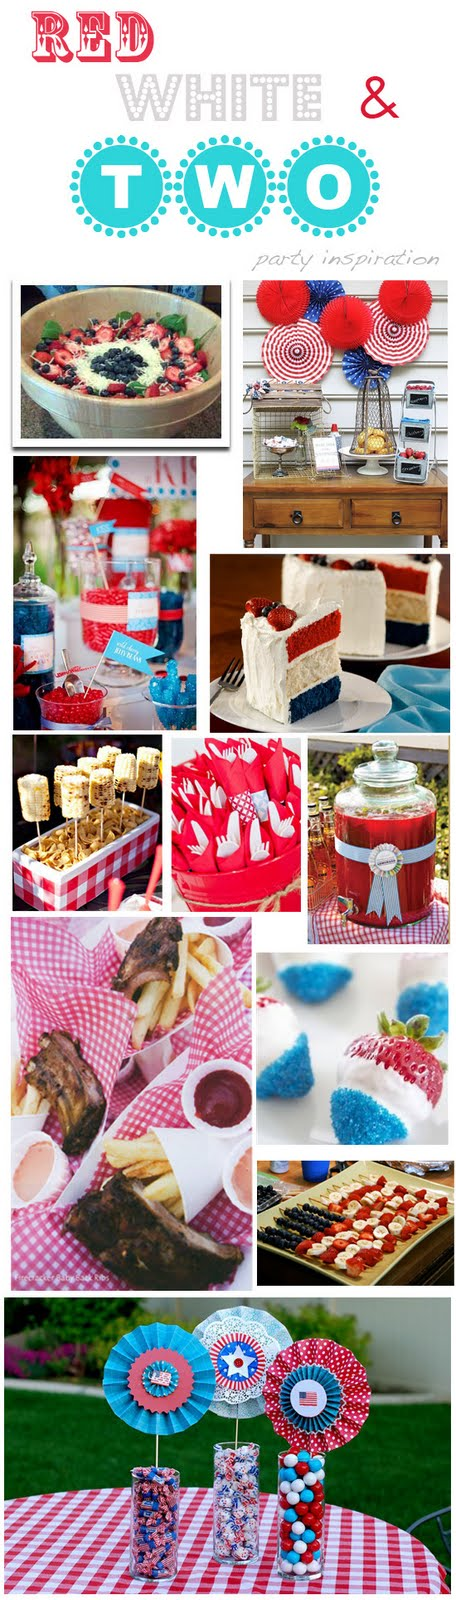 red-white-and-two-inspiration